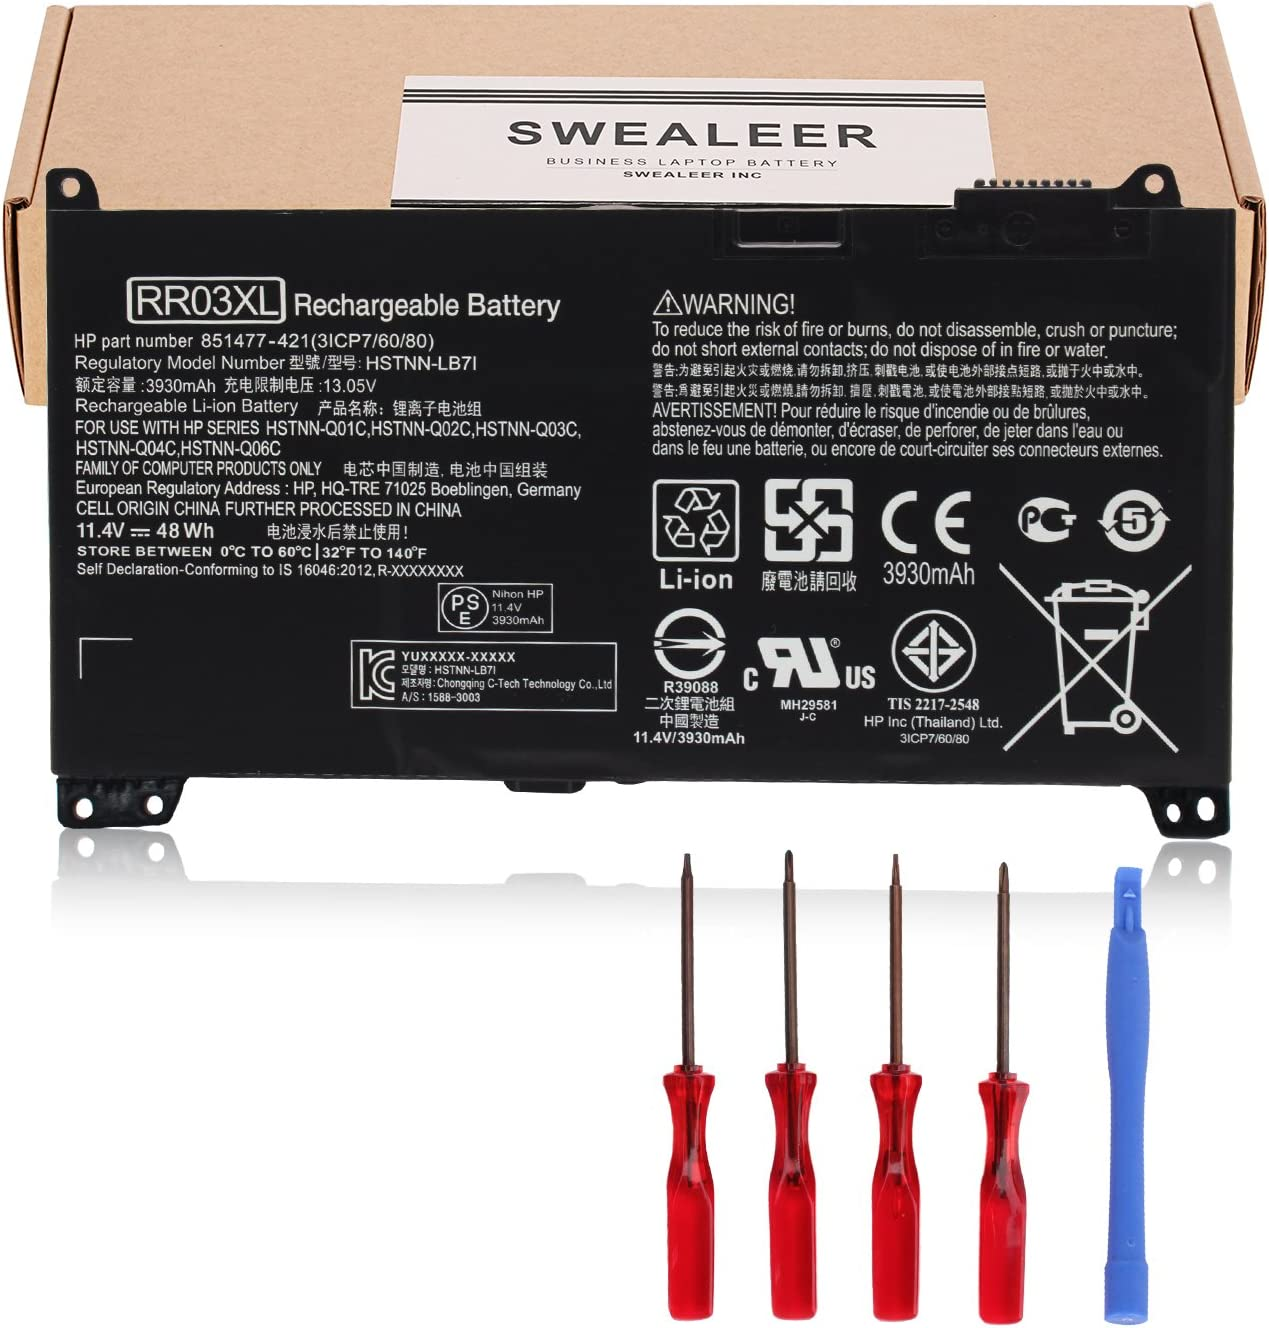 SWEALEER Compatible RR03XL HSTNN-Q02C Battery if Applicable HP ProBook 430 440 450 455 470 G4 mt20 Replacement for 851477-421 851477-541 851477-831 HSTNN-UB7C 851610-850 HSTNN-LB7I [11.4V 48Wh RR03XL]